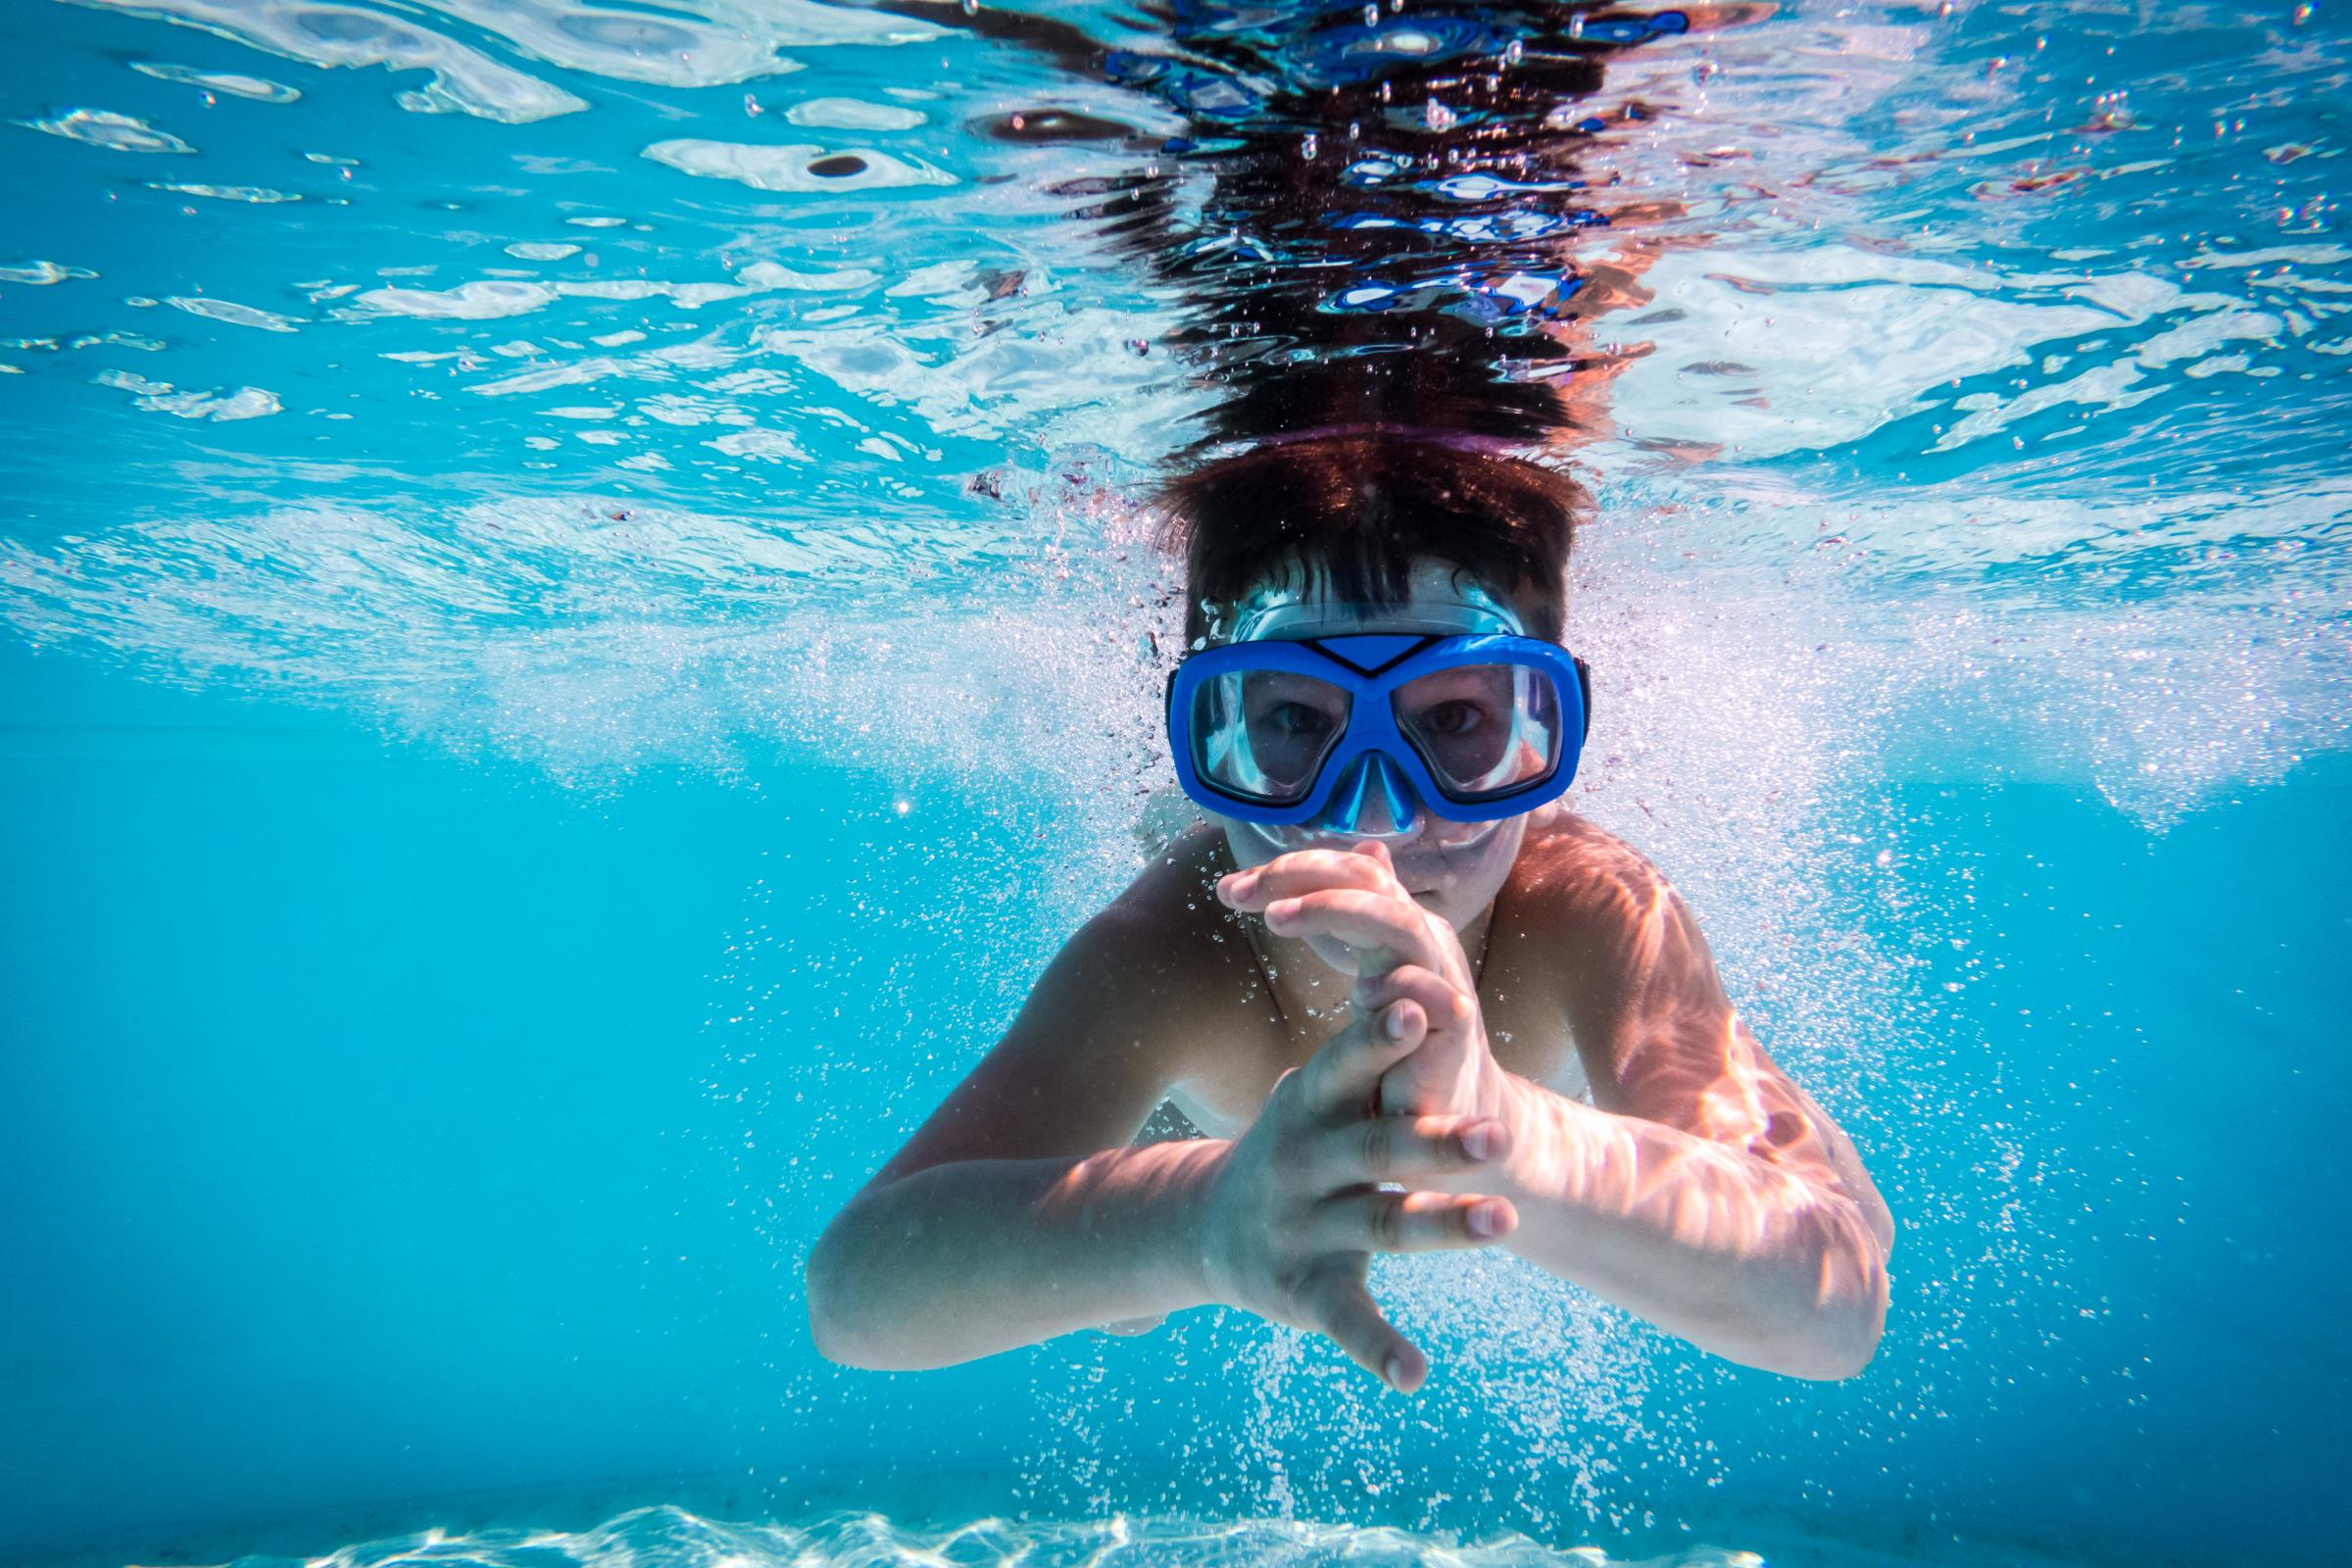 Boy in mask dive in swimming pool. Getty Images